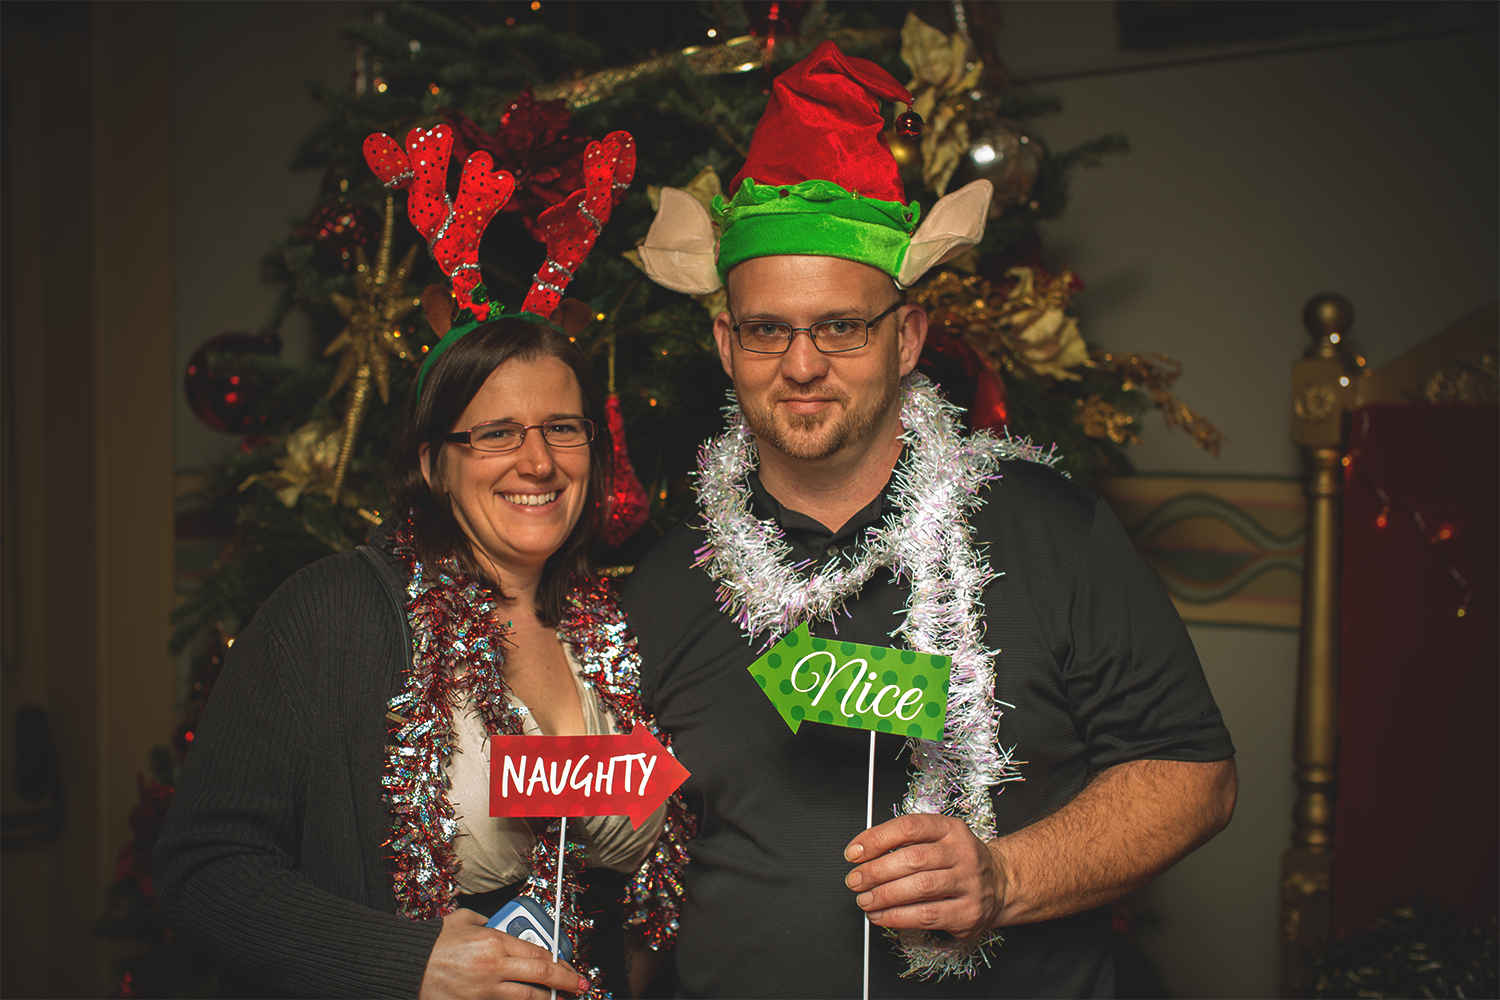 epproperties-vancouver-washington-xmas-party-photolga28.png